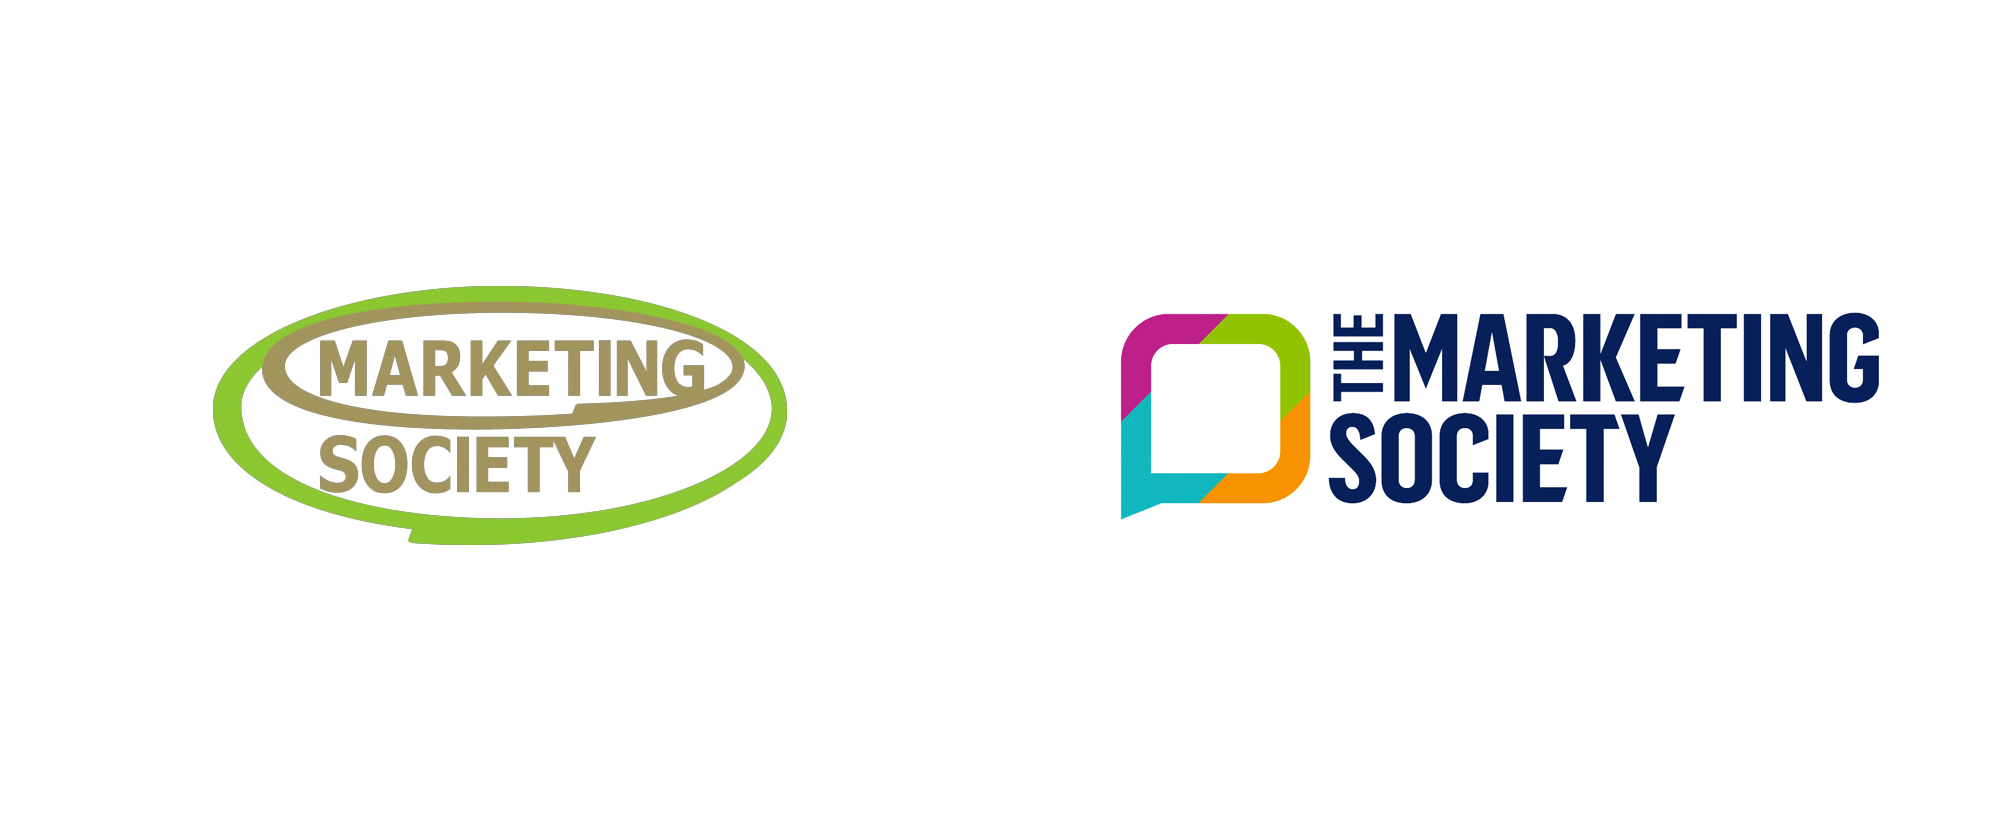 New Logo and Identity for The Marketing Society by Bloom